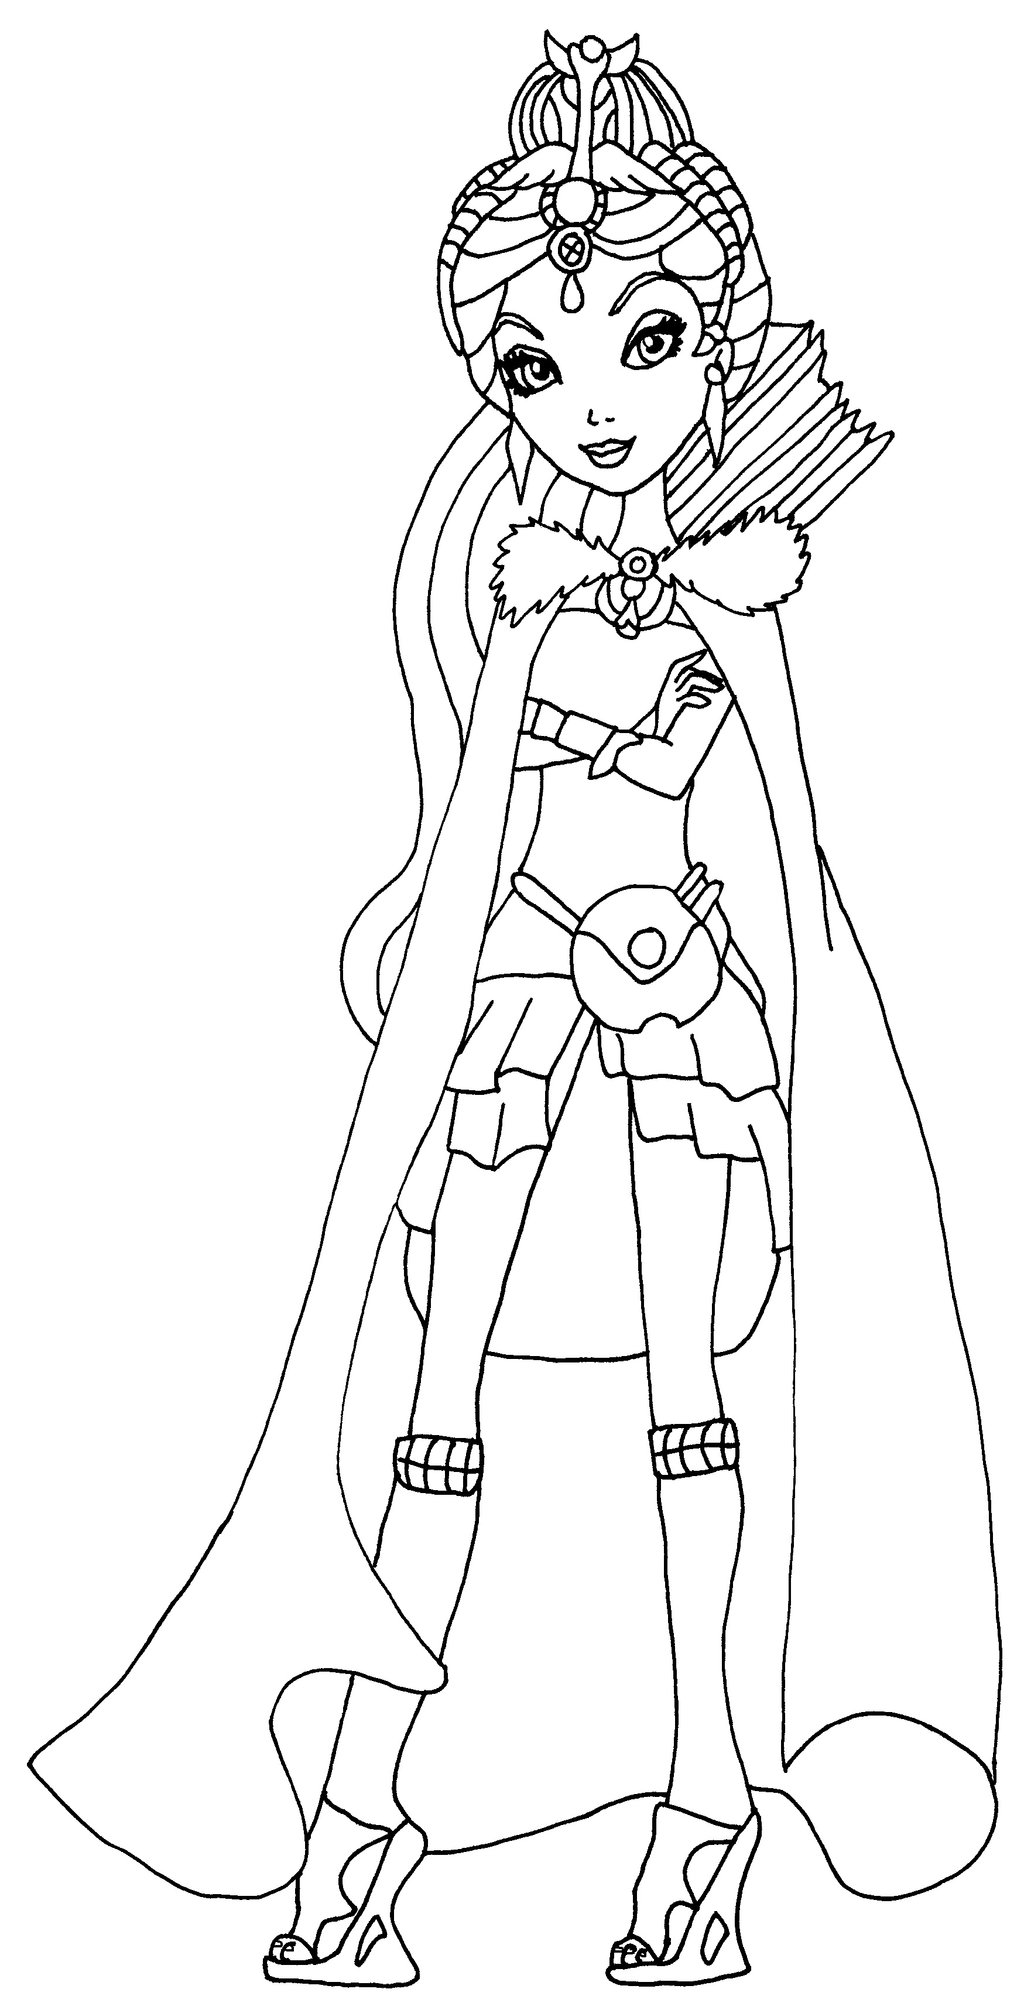 coloring pages ever after high ever after high raven madeline briar and apple coloring pages ever coloring after high